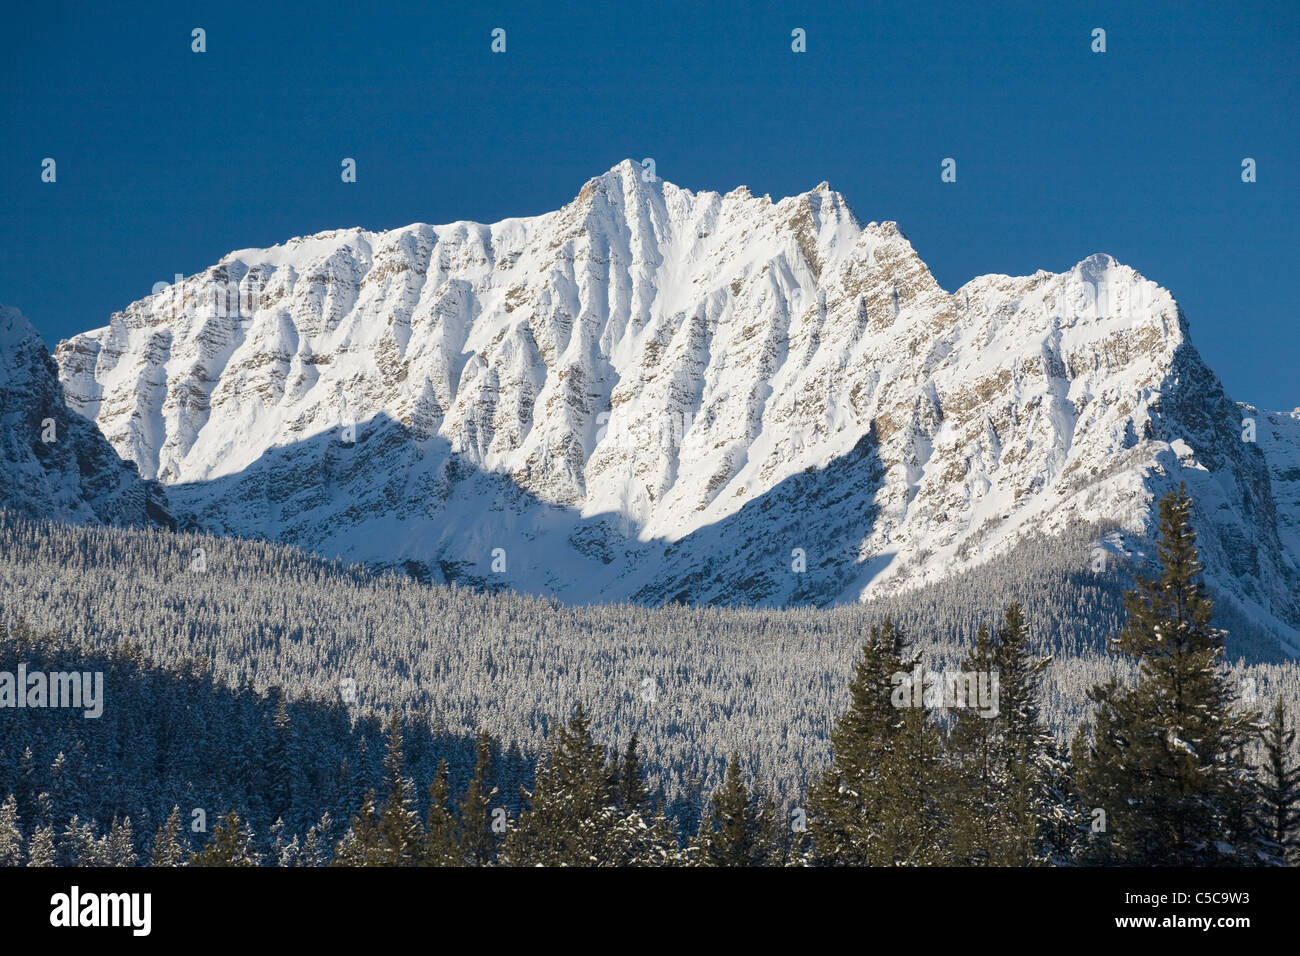 Snow-Capped Mountain; Banff, Alberta, Canada - Stock Image